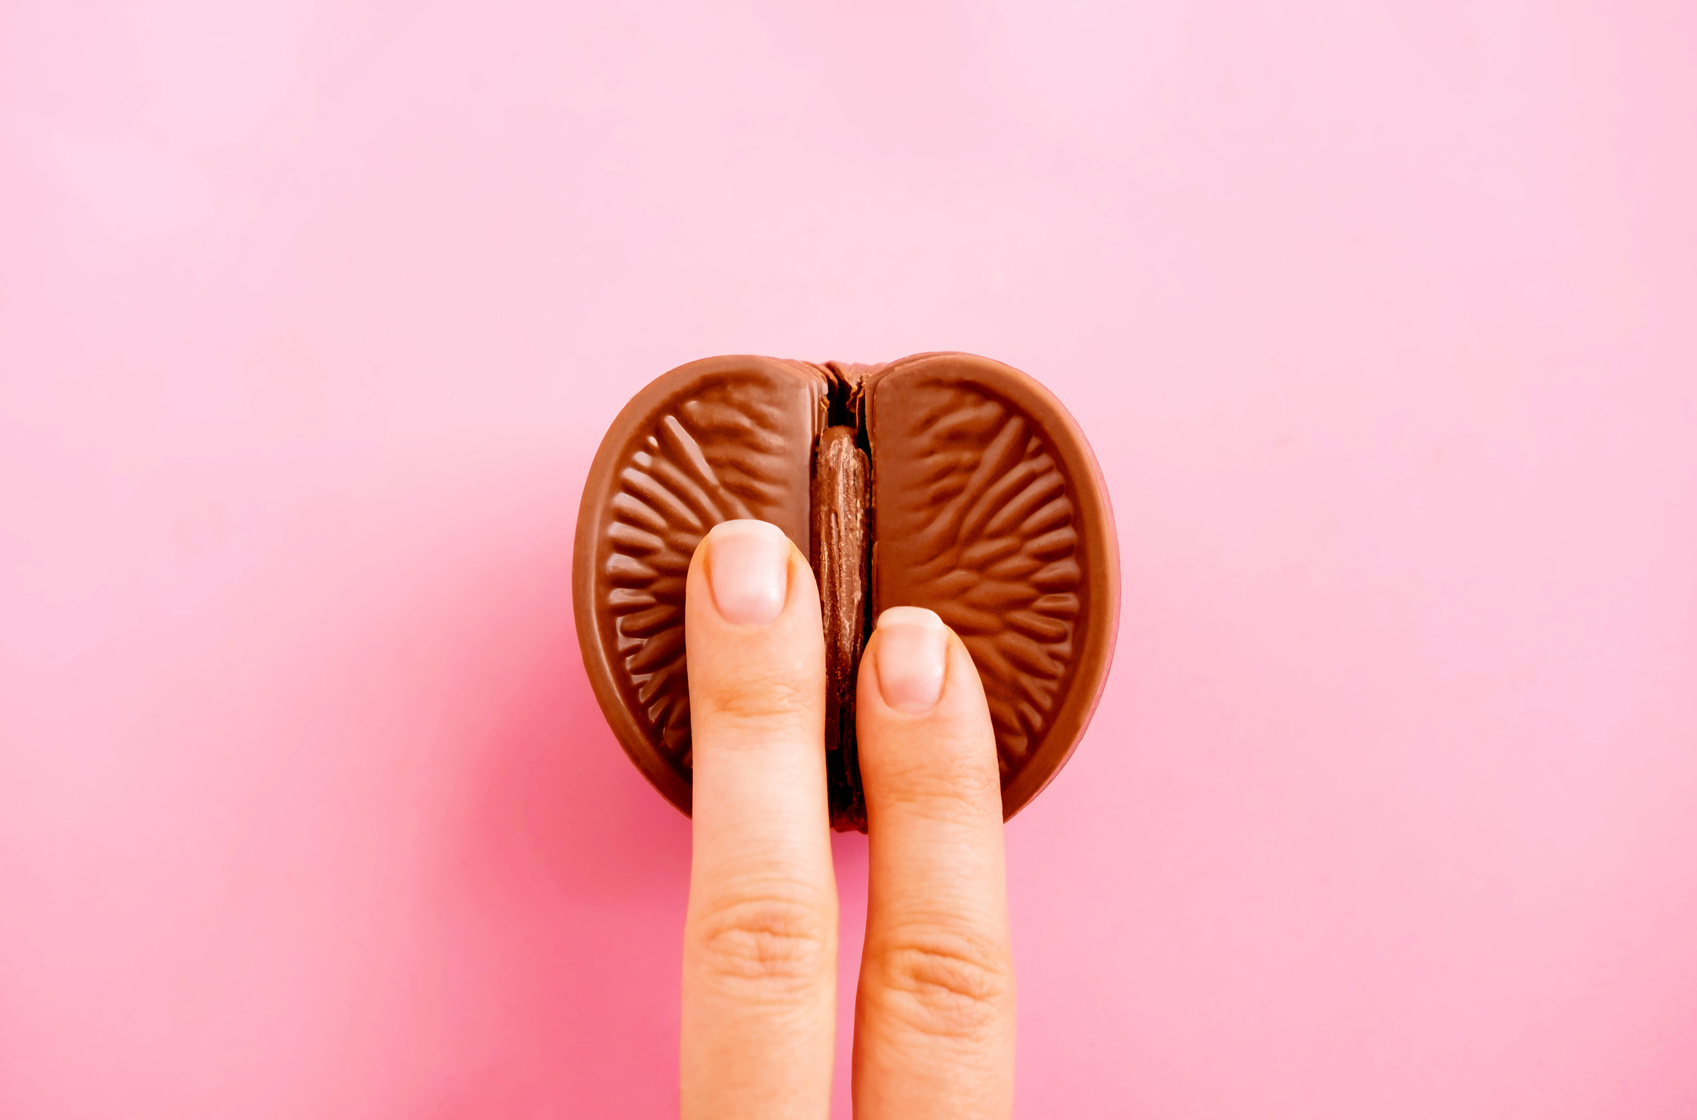 Vagina symbol. Two fingers on chocolate orange on pink background. Sex concept. Top view, copy space